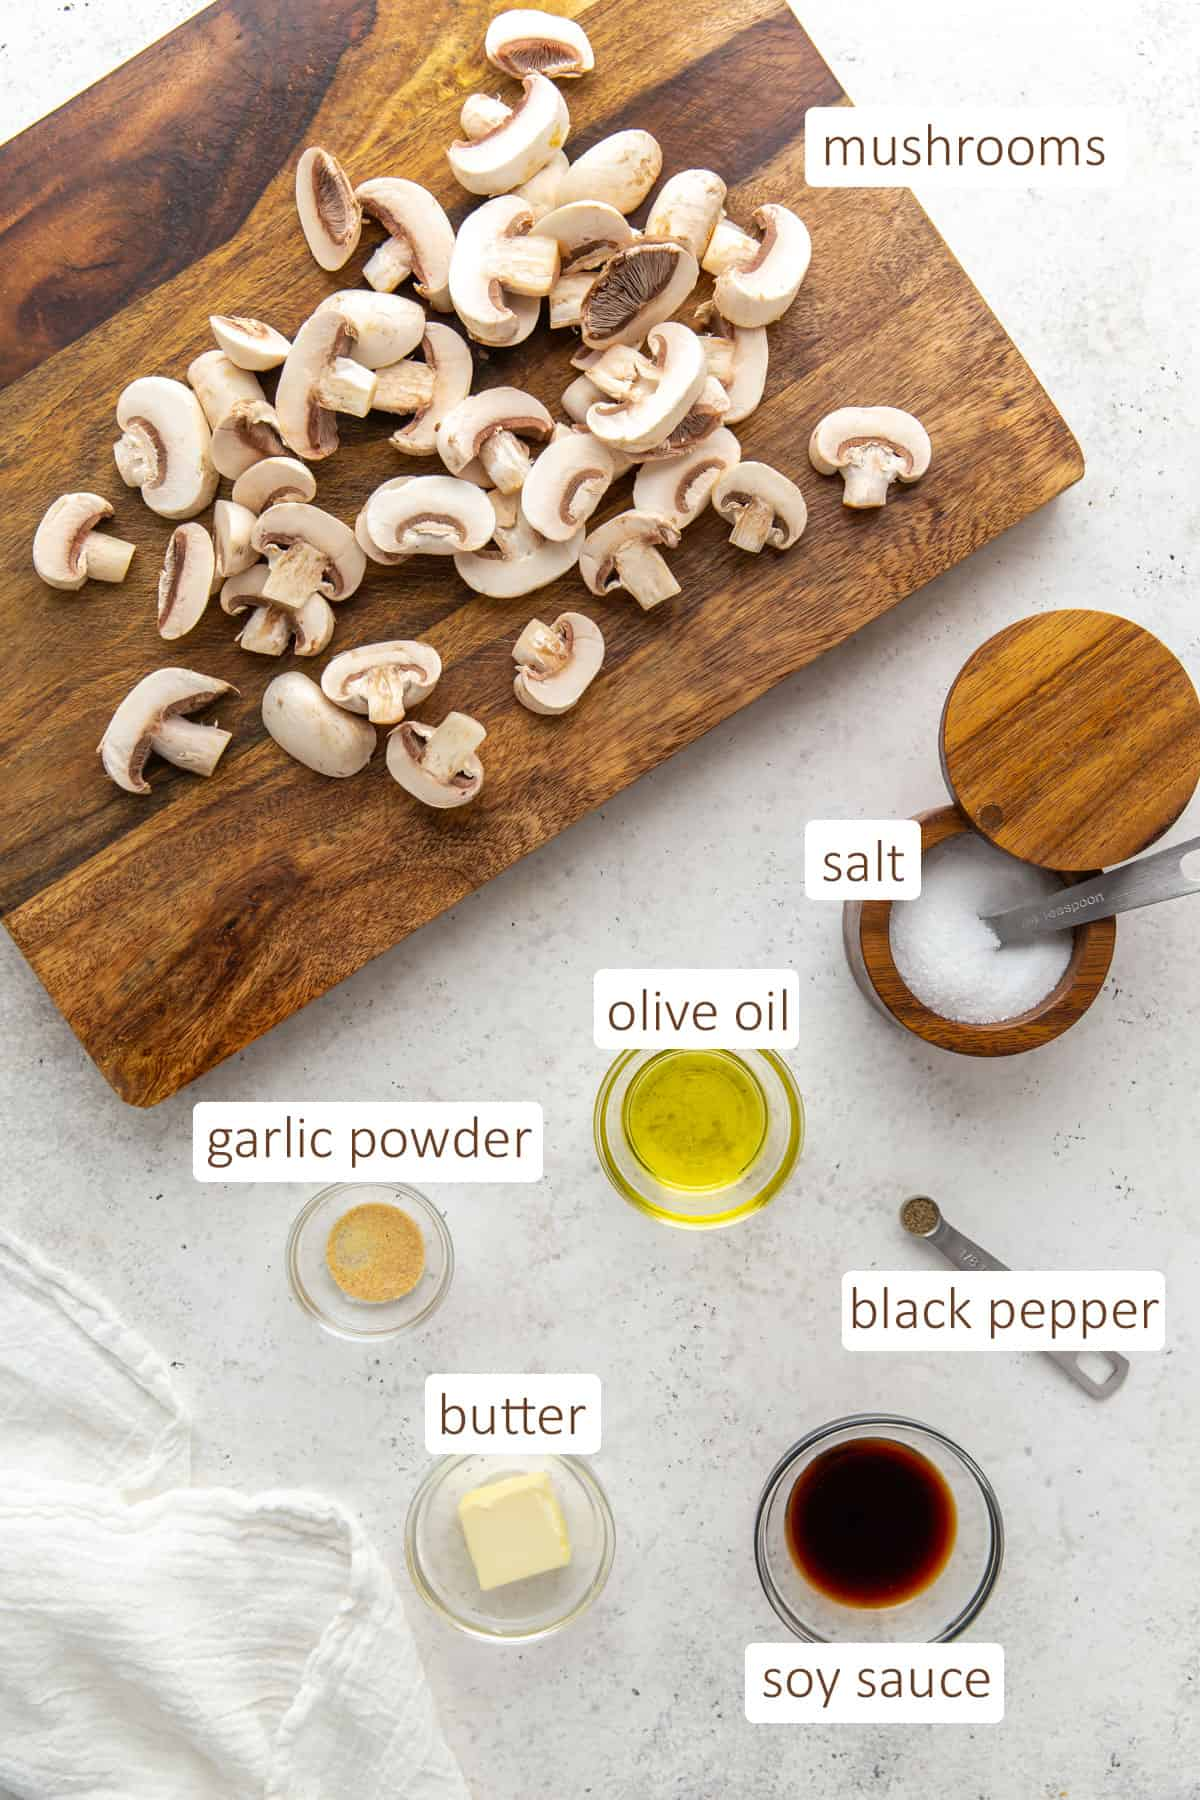 Overhead view of ingredients needed to prepare sauteed mushrooms.